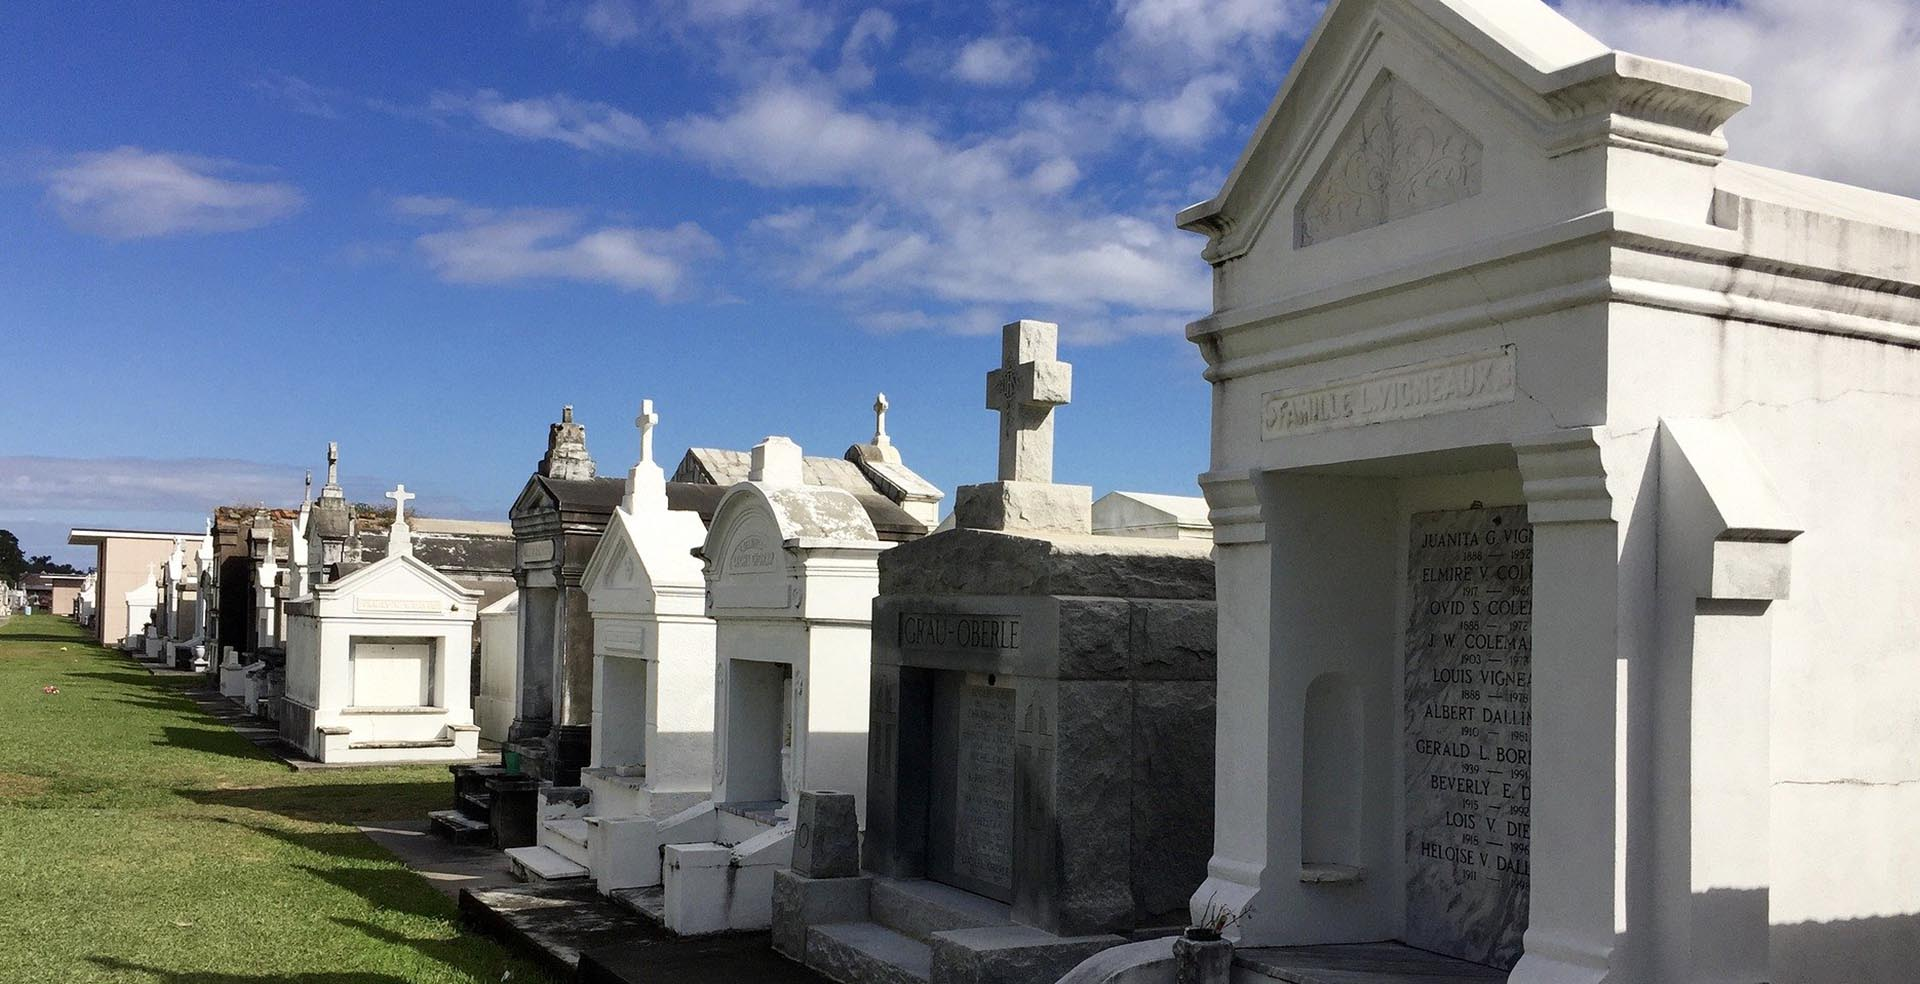 above ground graves at a New Orleans cemetery